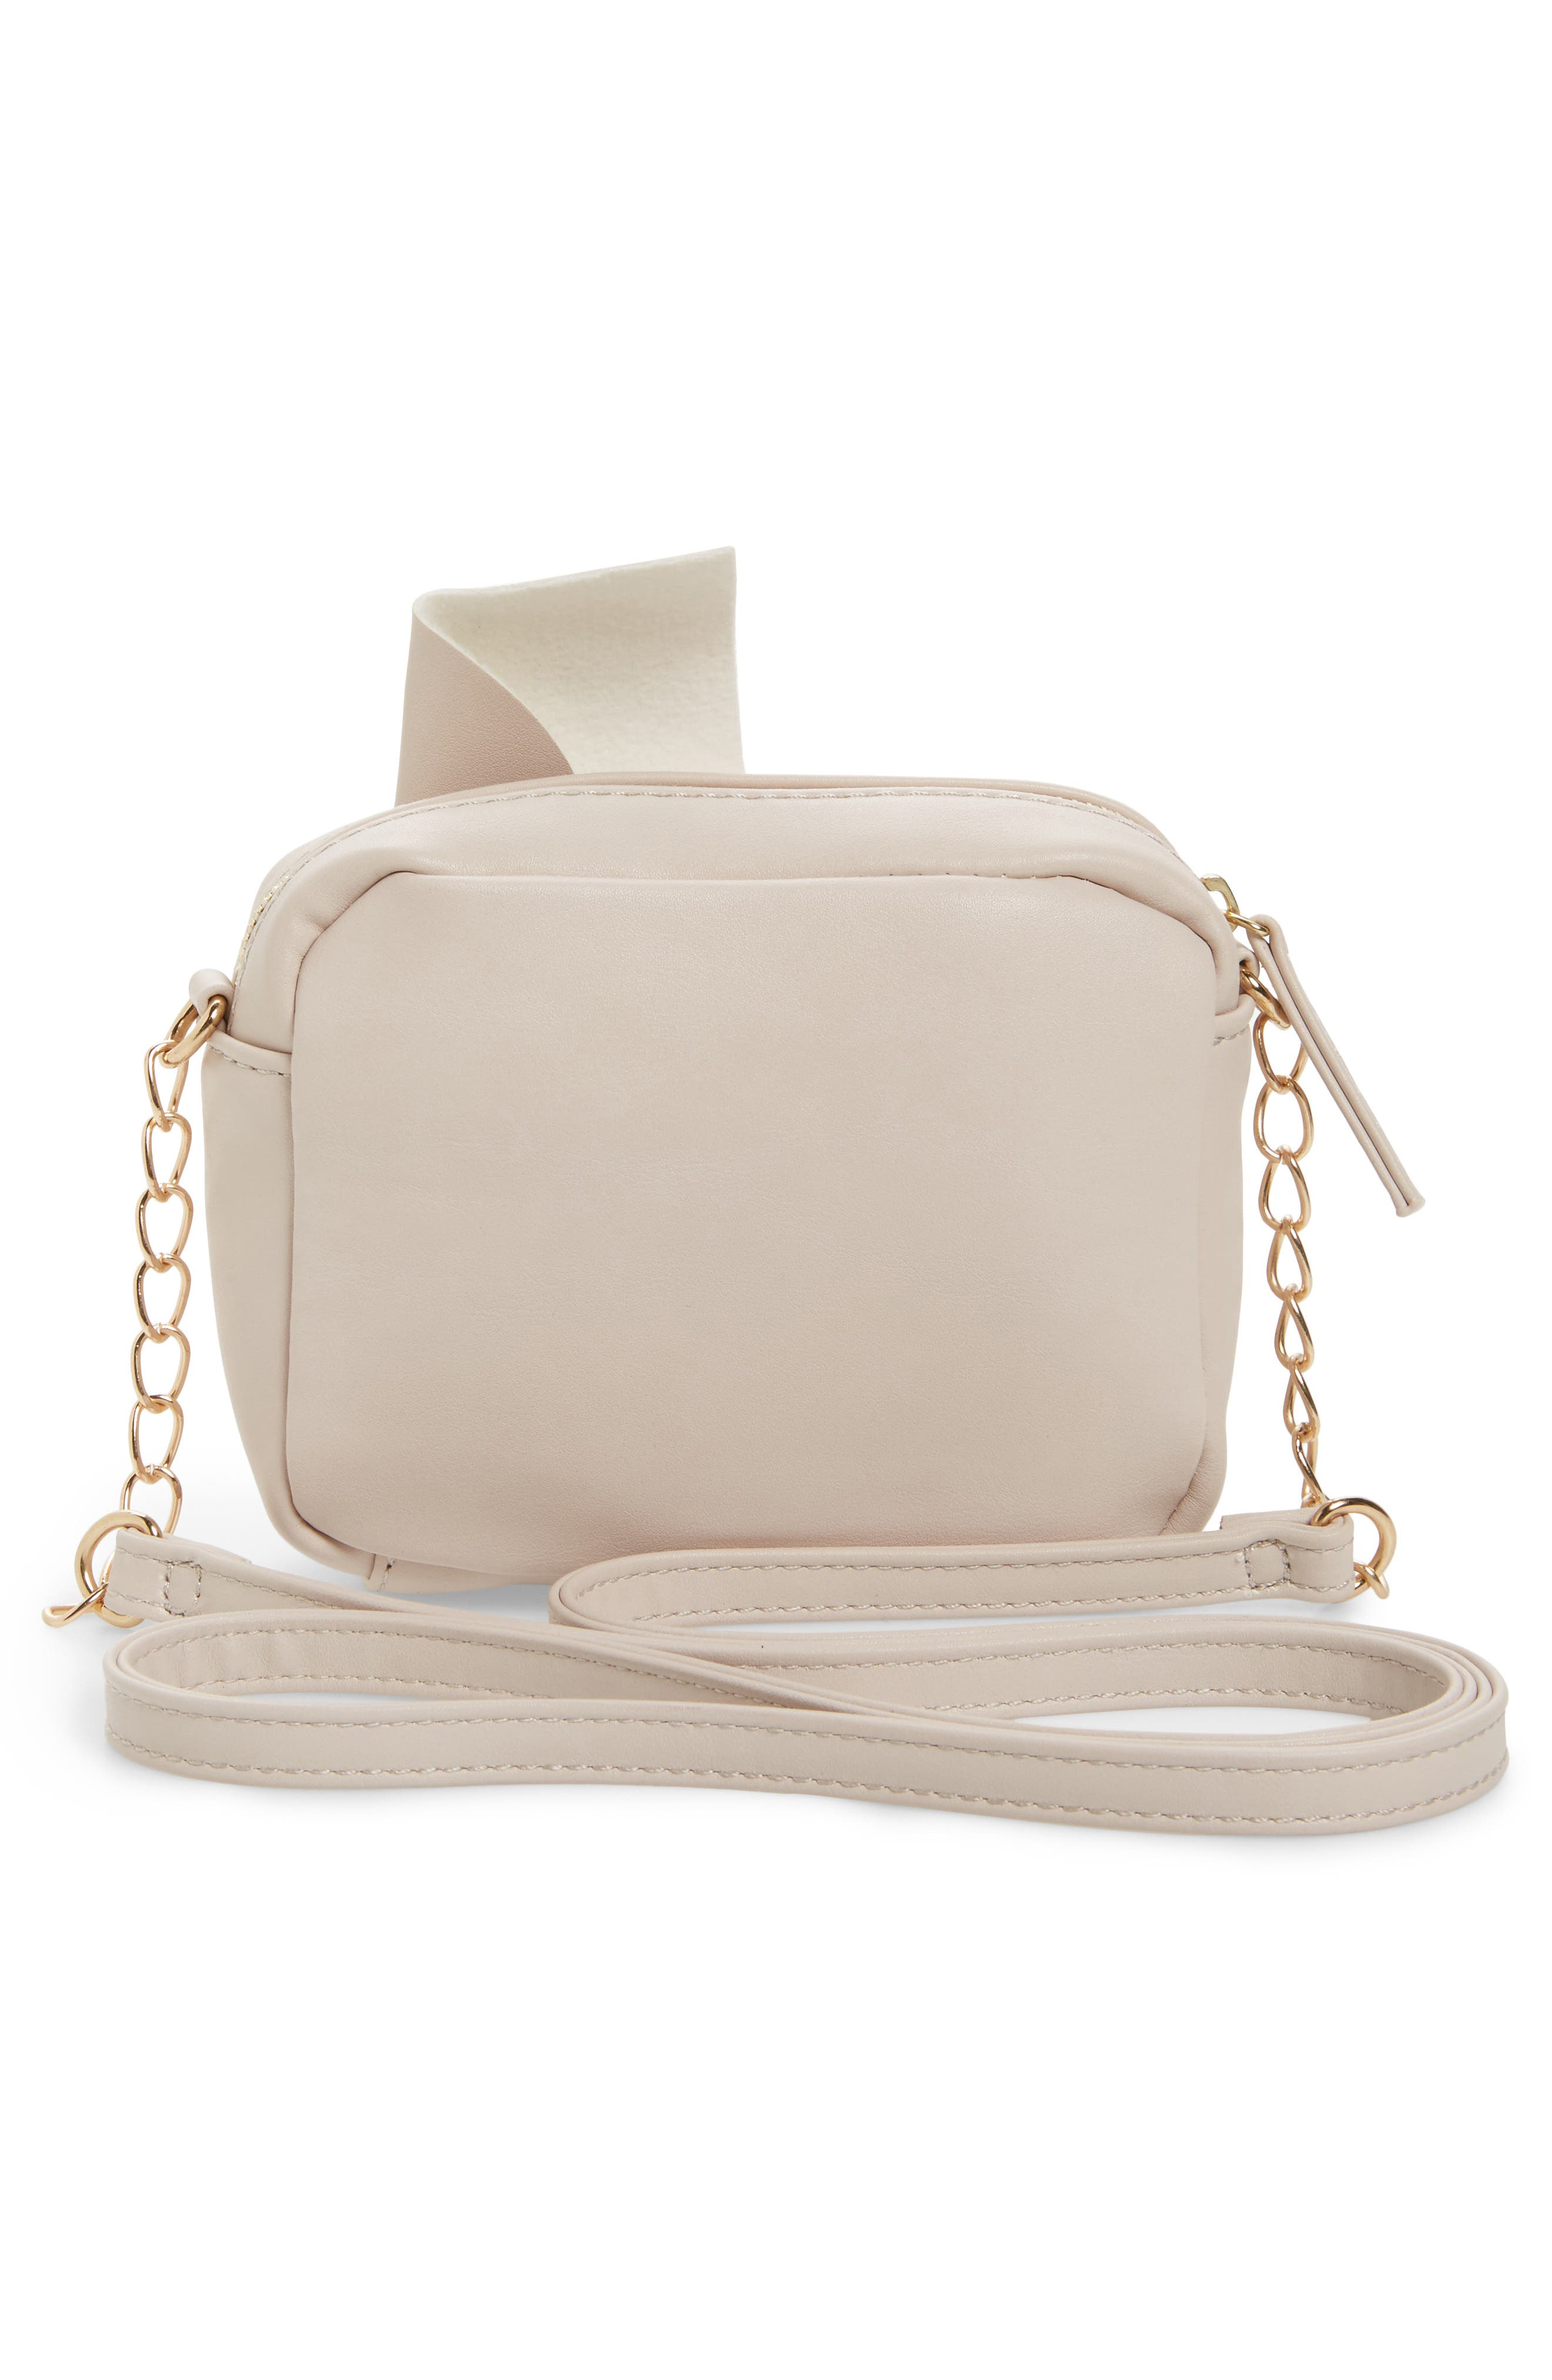 Knotted Bow Faux Leather Crossbody Bag,                             Alternate thumbnail 2, color,                             Blush